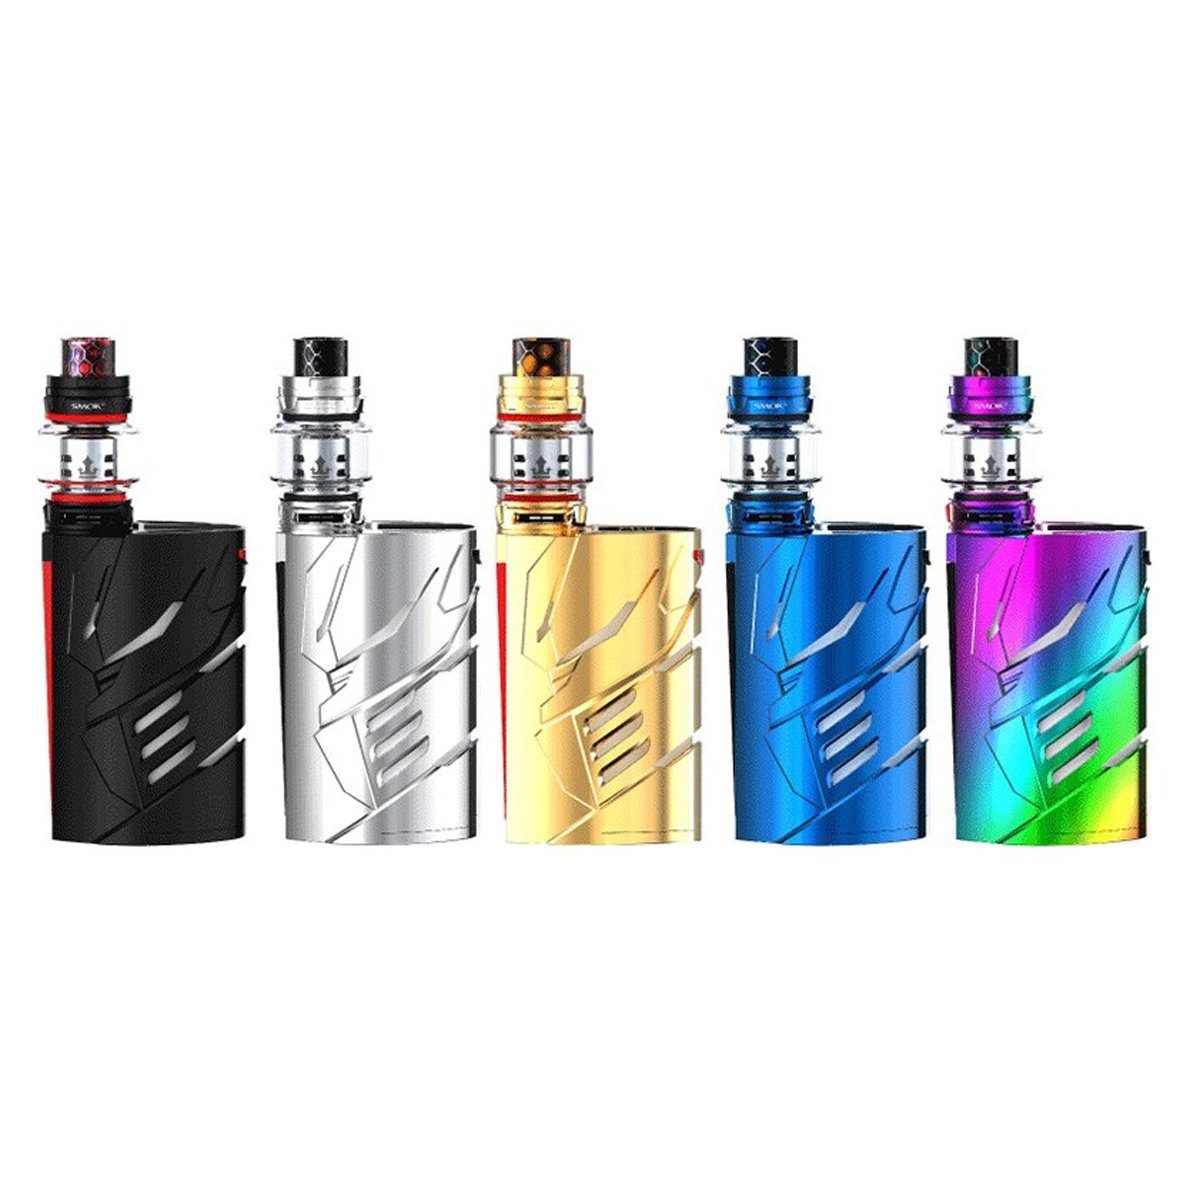 SMOK T-Priv 3 300W TC Kit With TFV12 Prince Tank